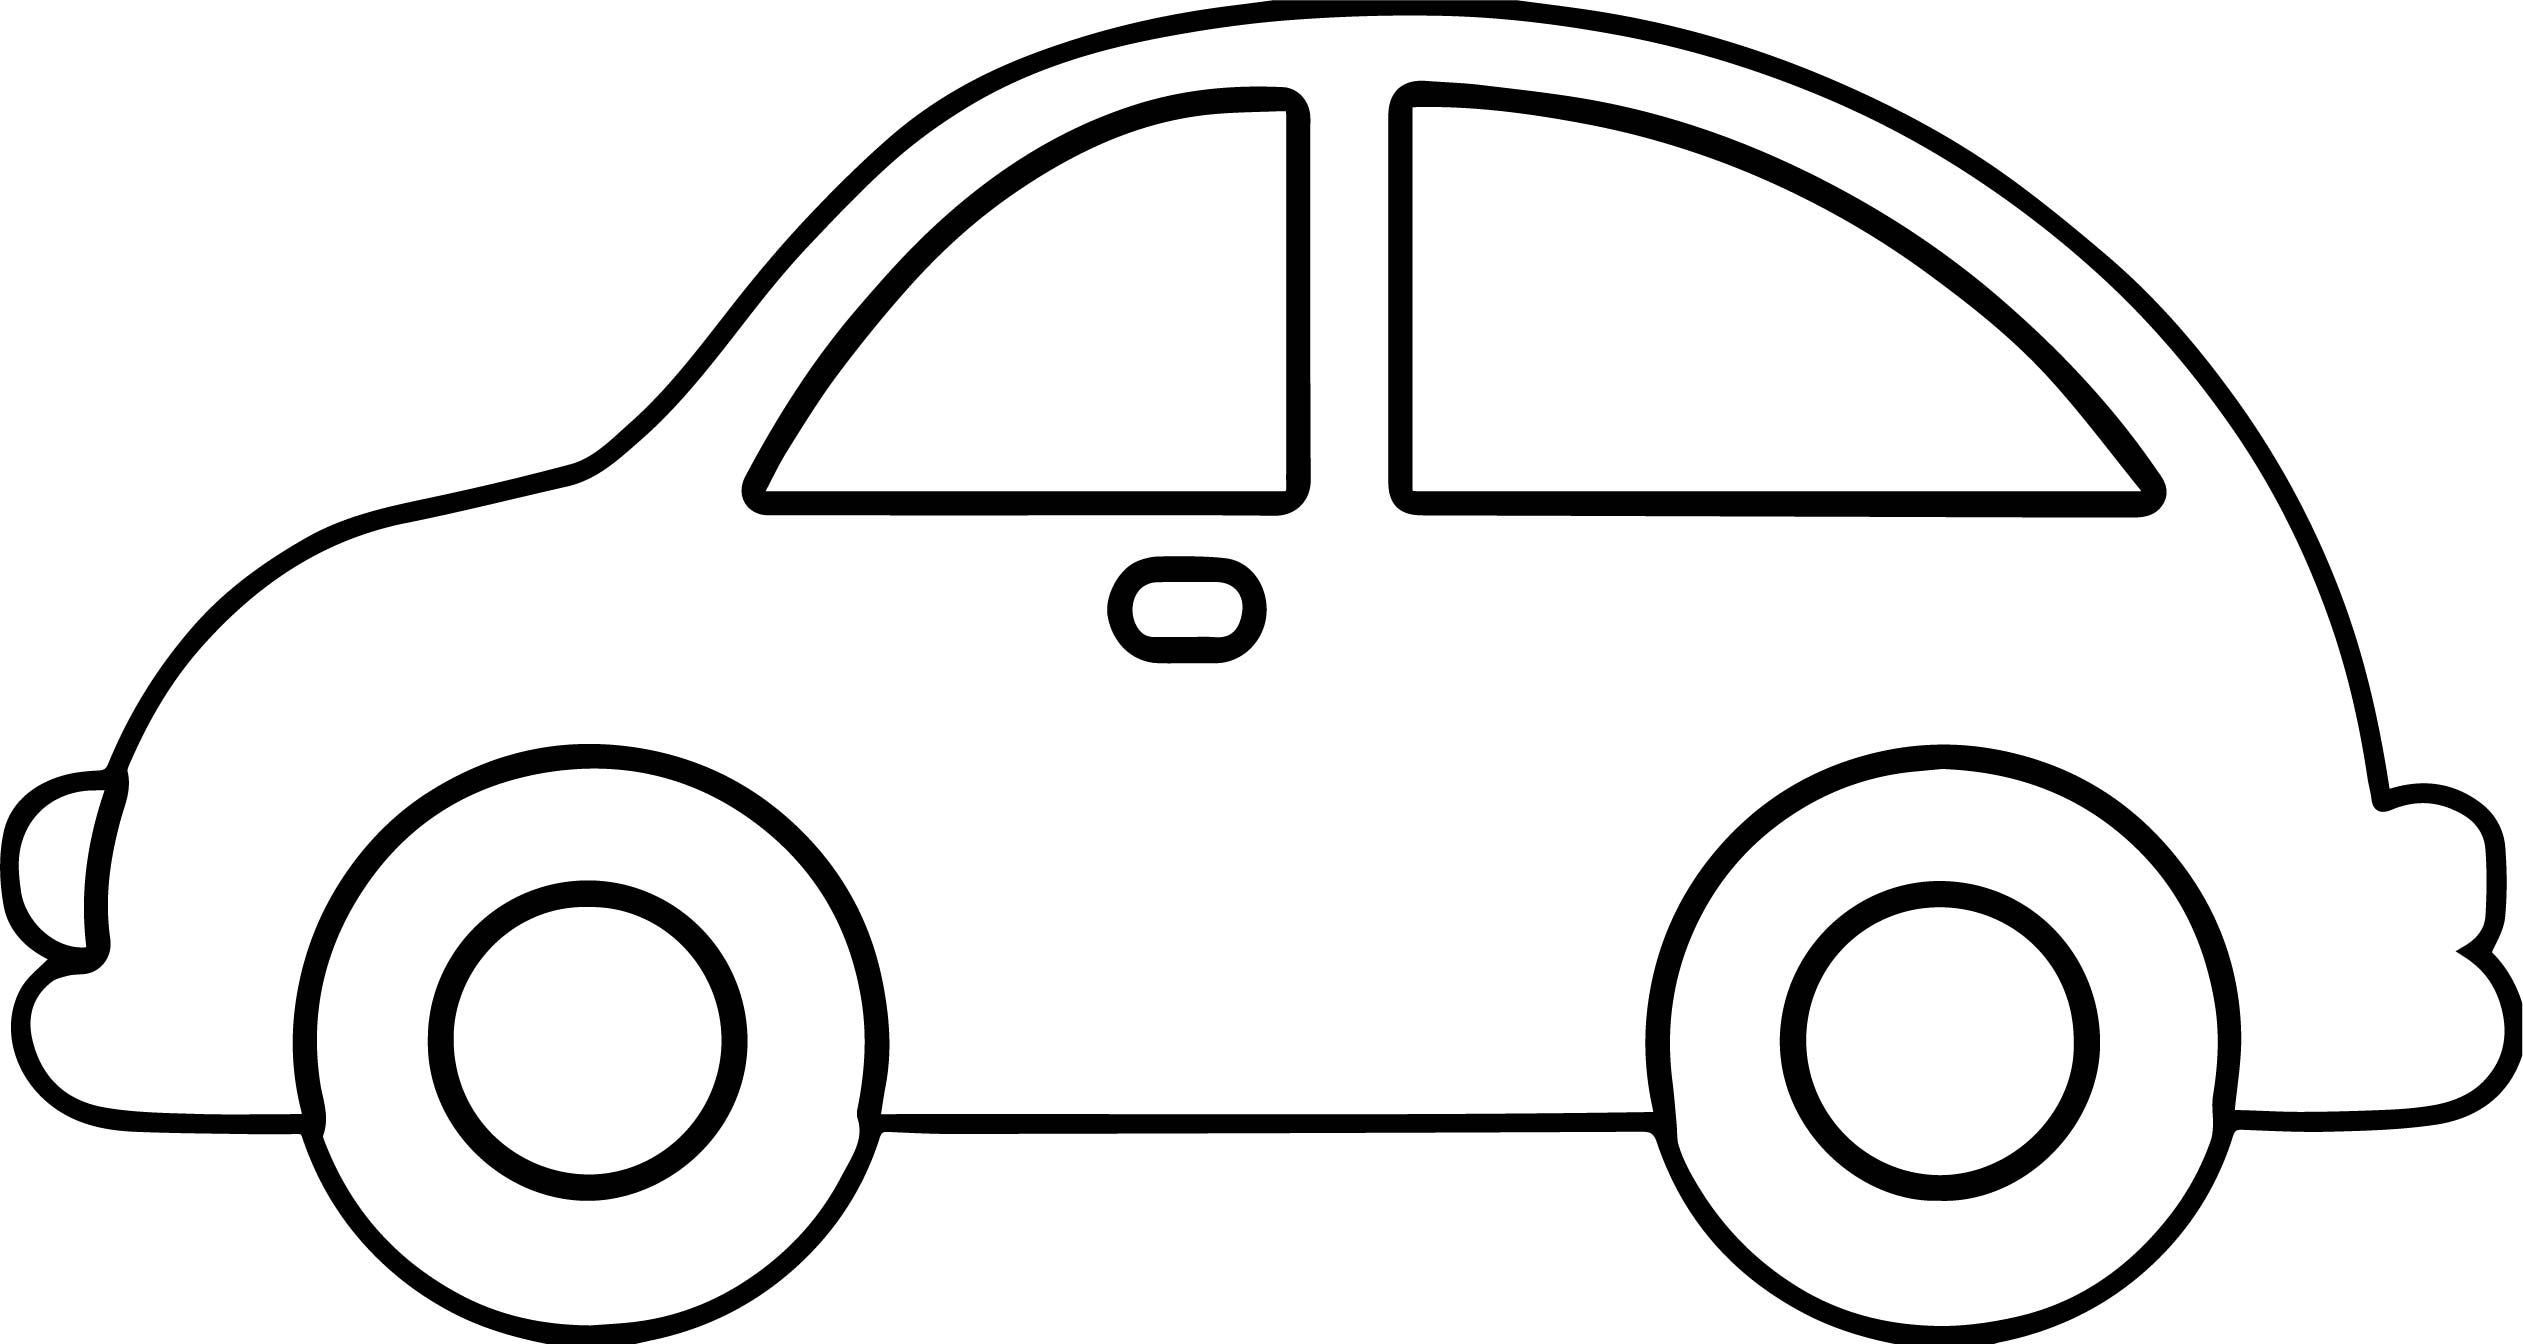 Car Outline Coloring Pages